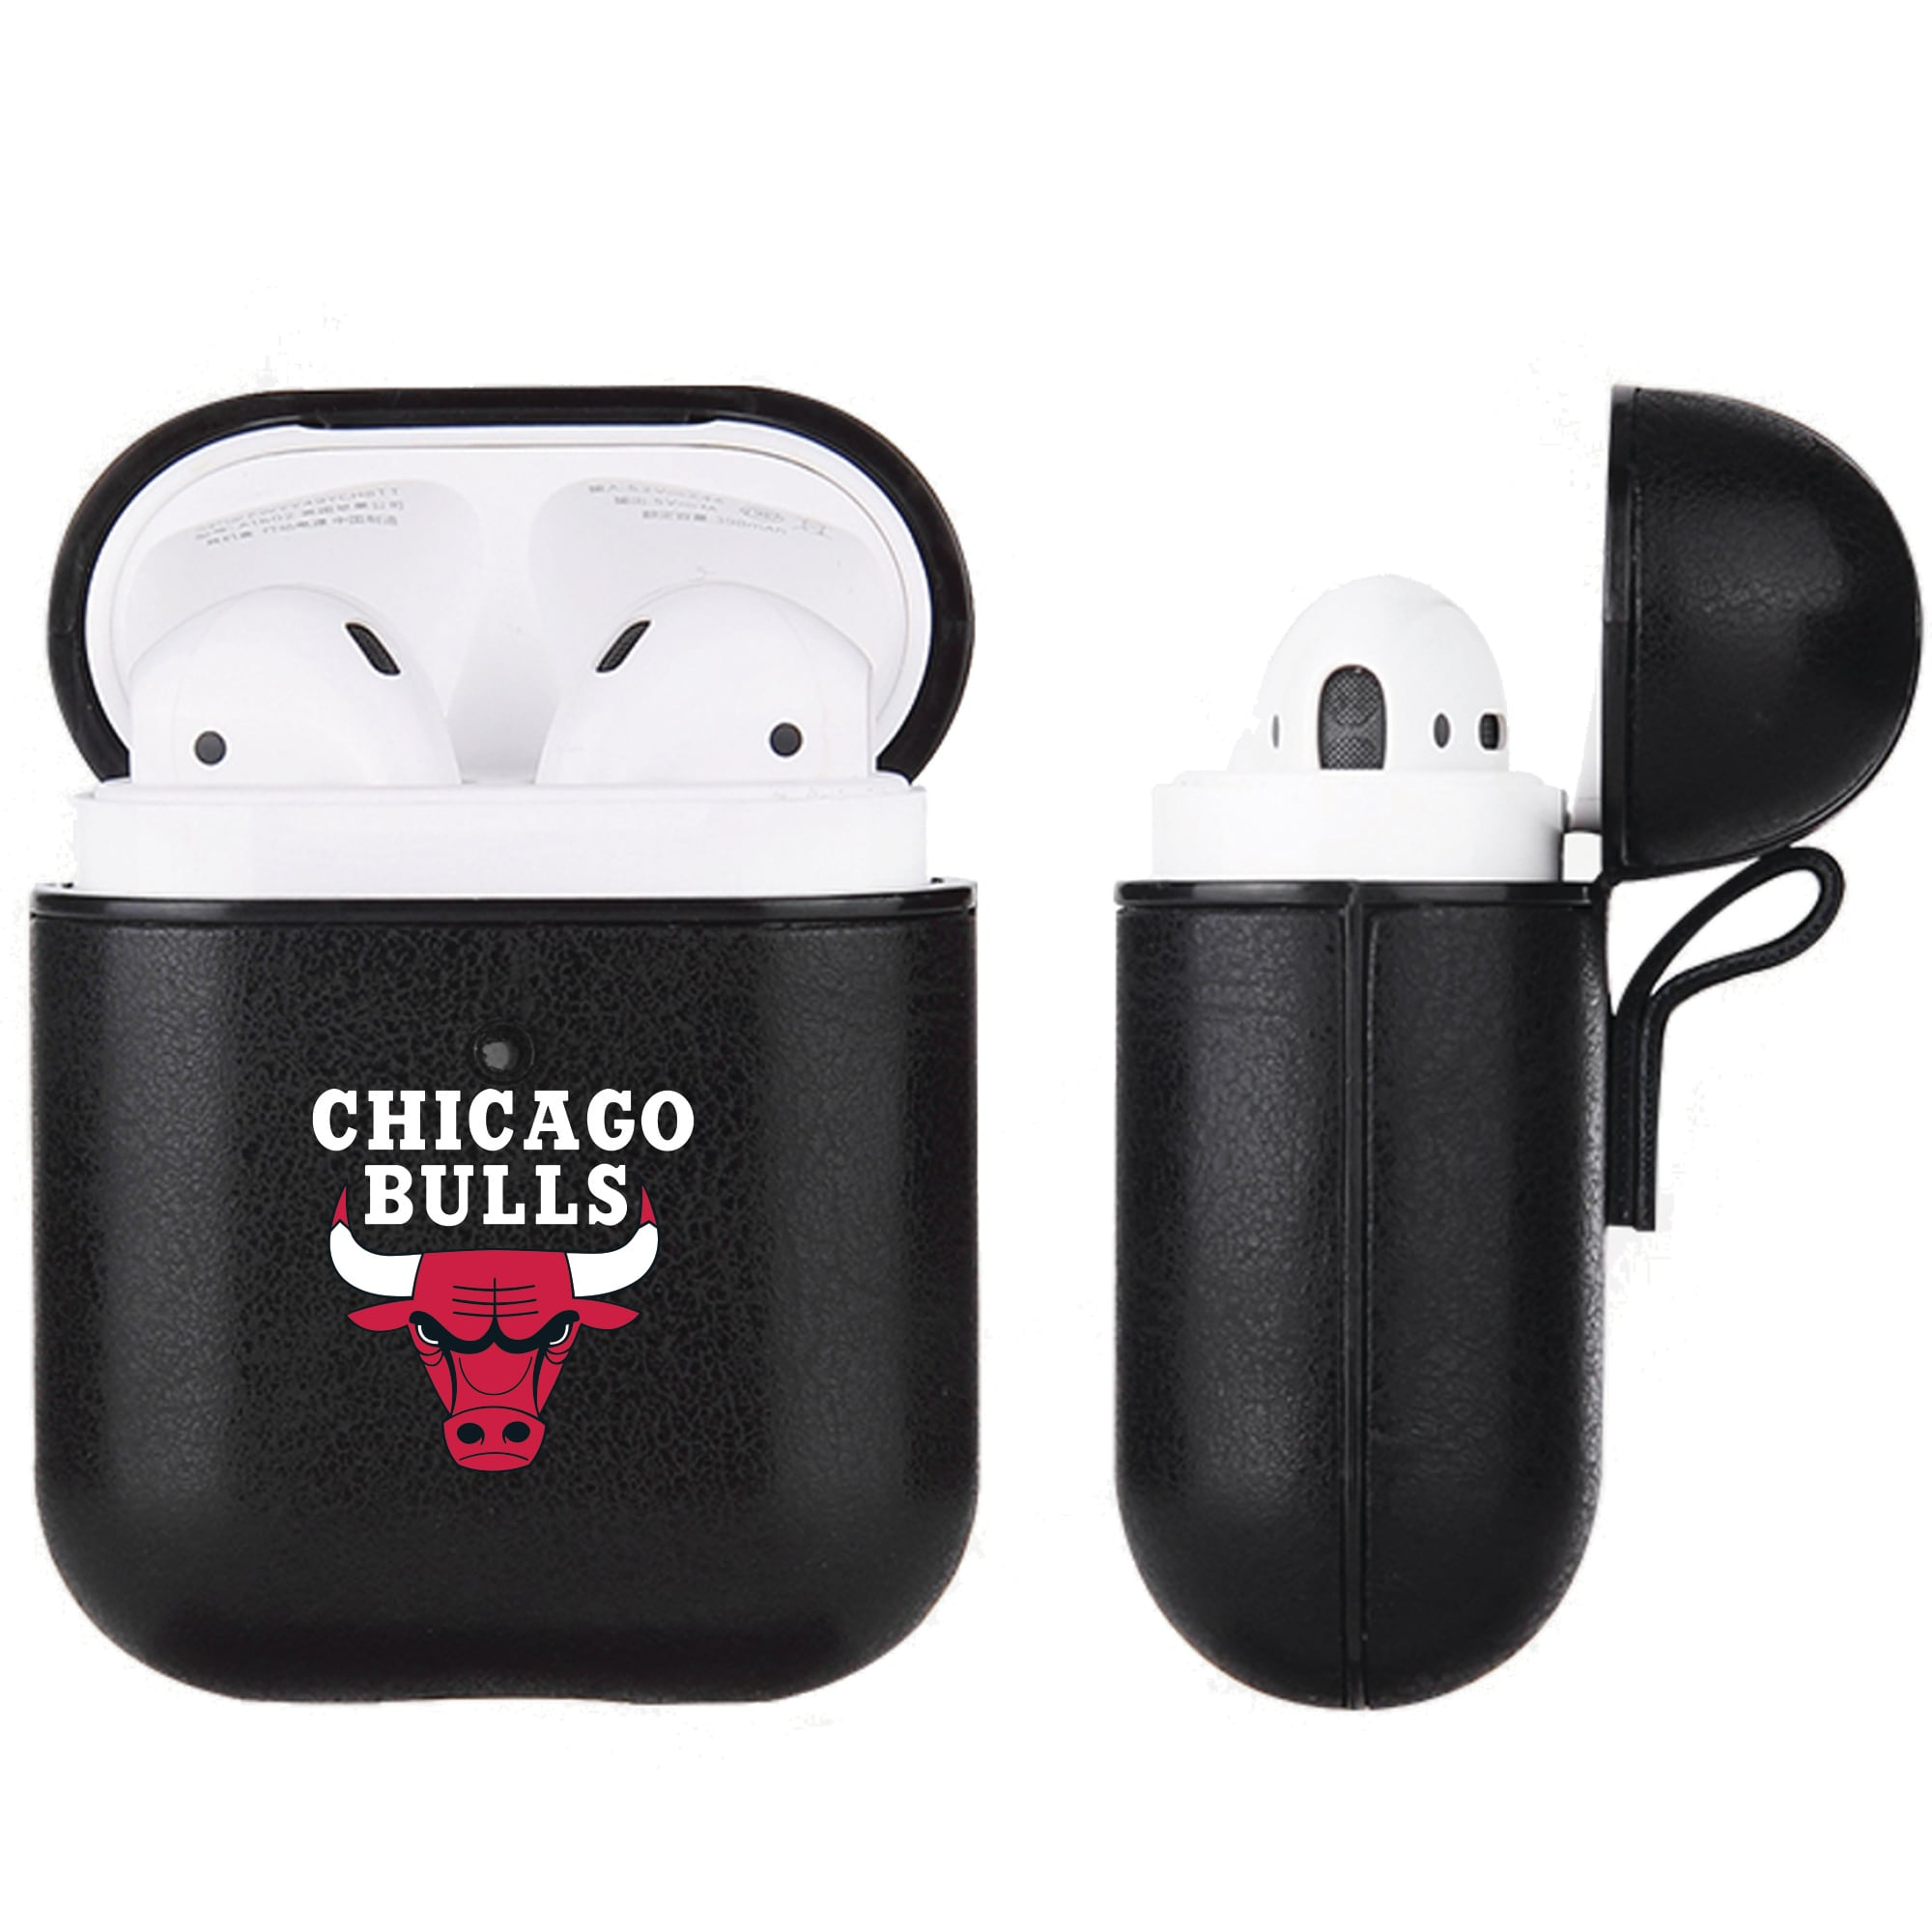 Chicago Bulls Air Pods Black Leatherette Case